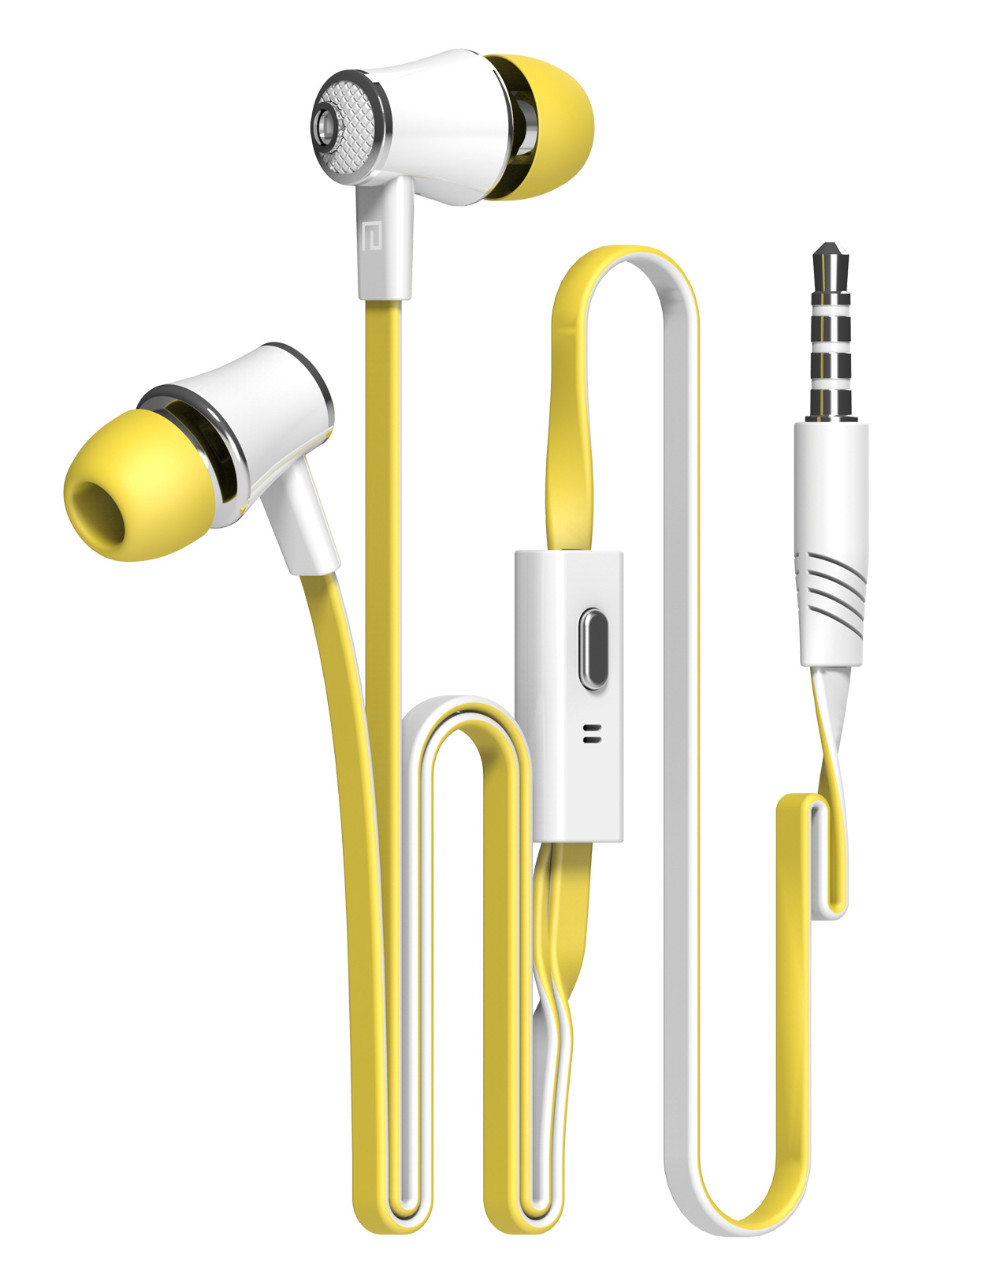 free Ship! Original Brand Head phones Earphone 3.5mm Stereo Music Bass Headset With Mic for Samsung Xiaomi Headphones for iphone